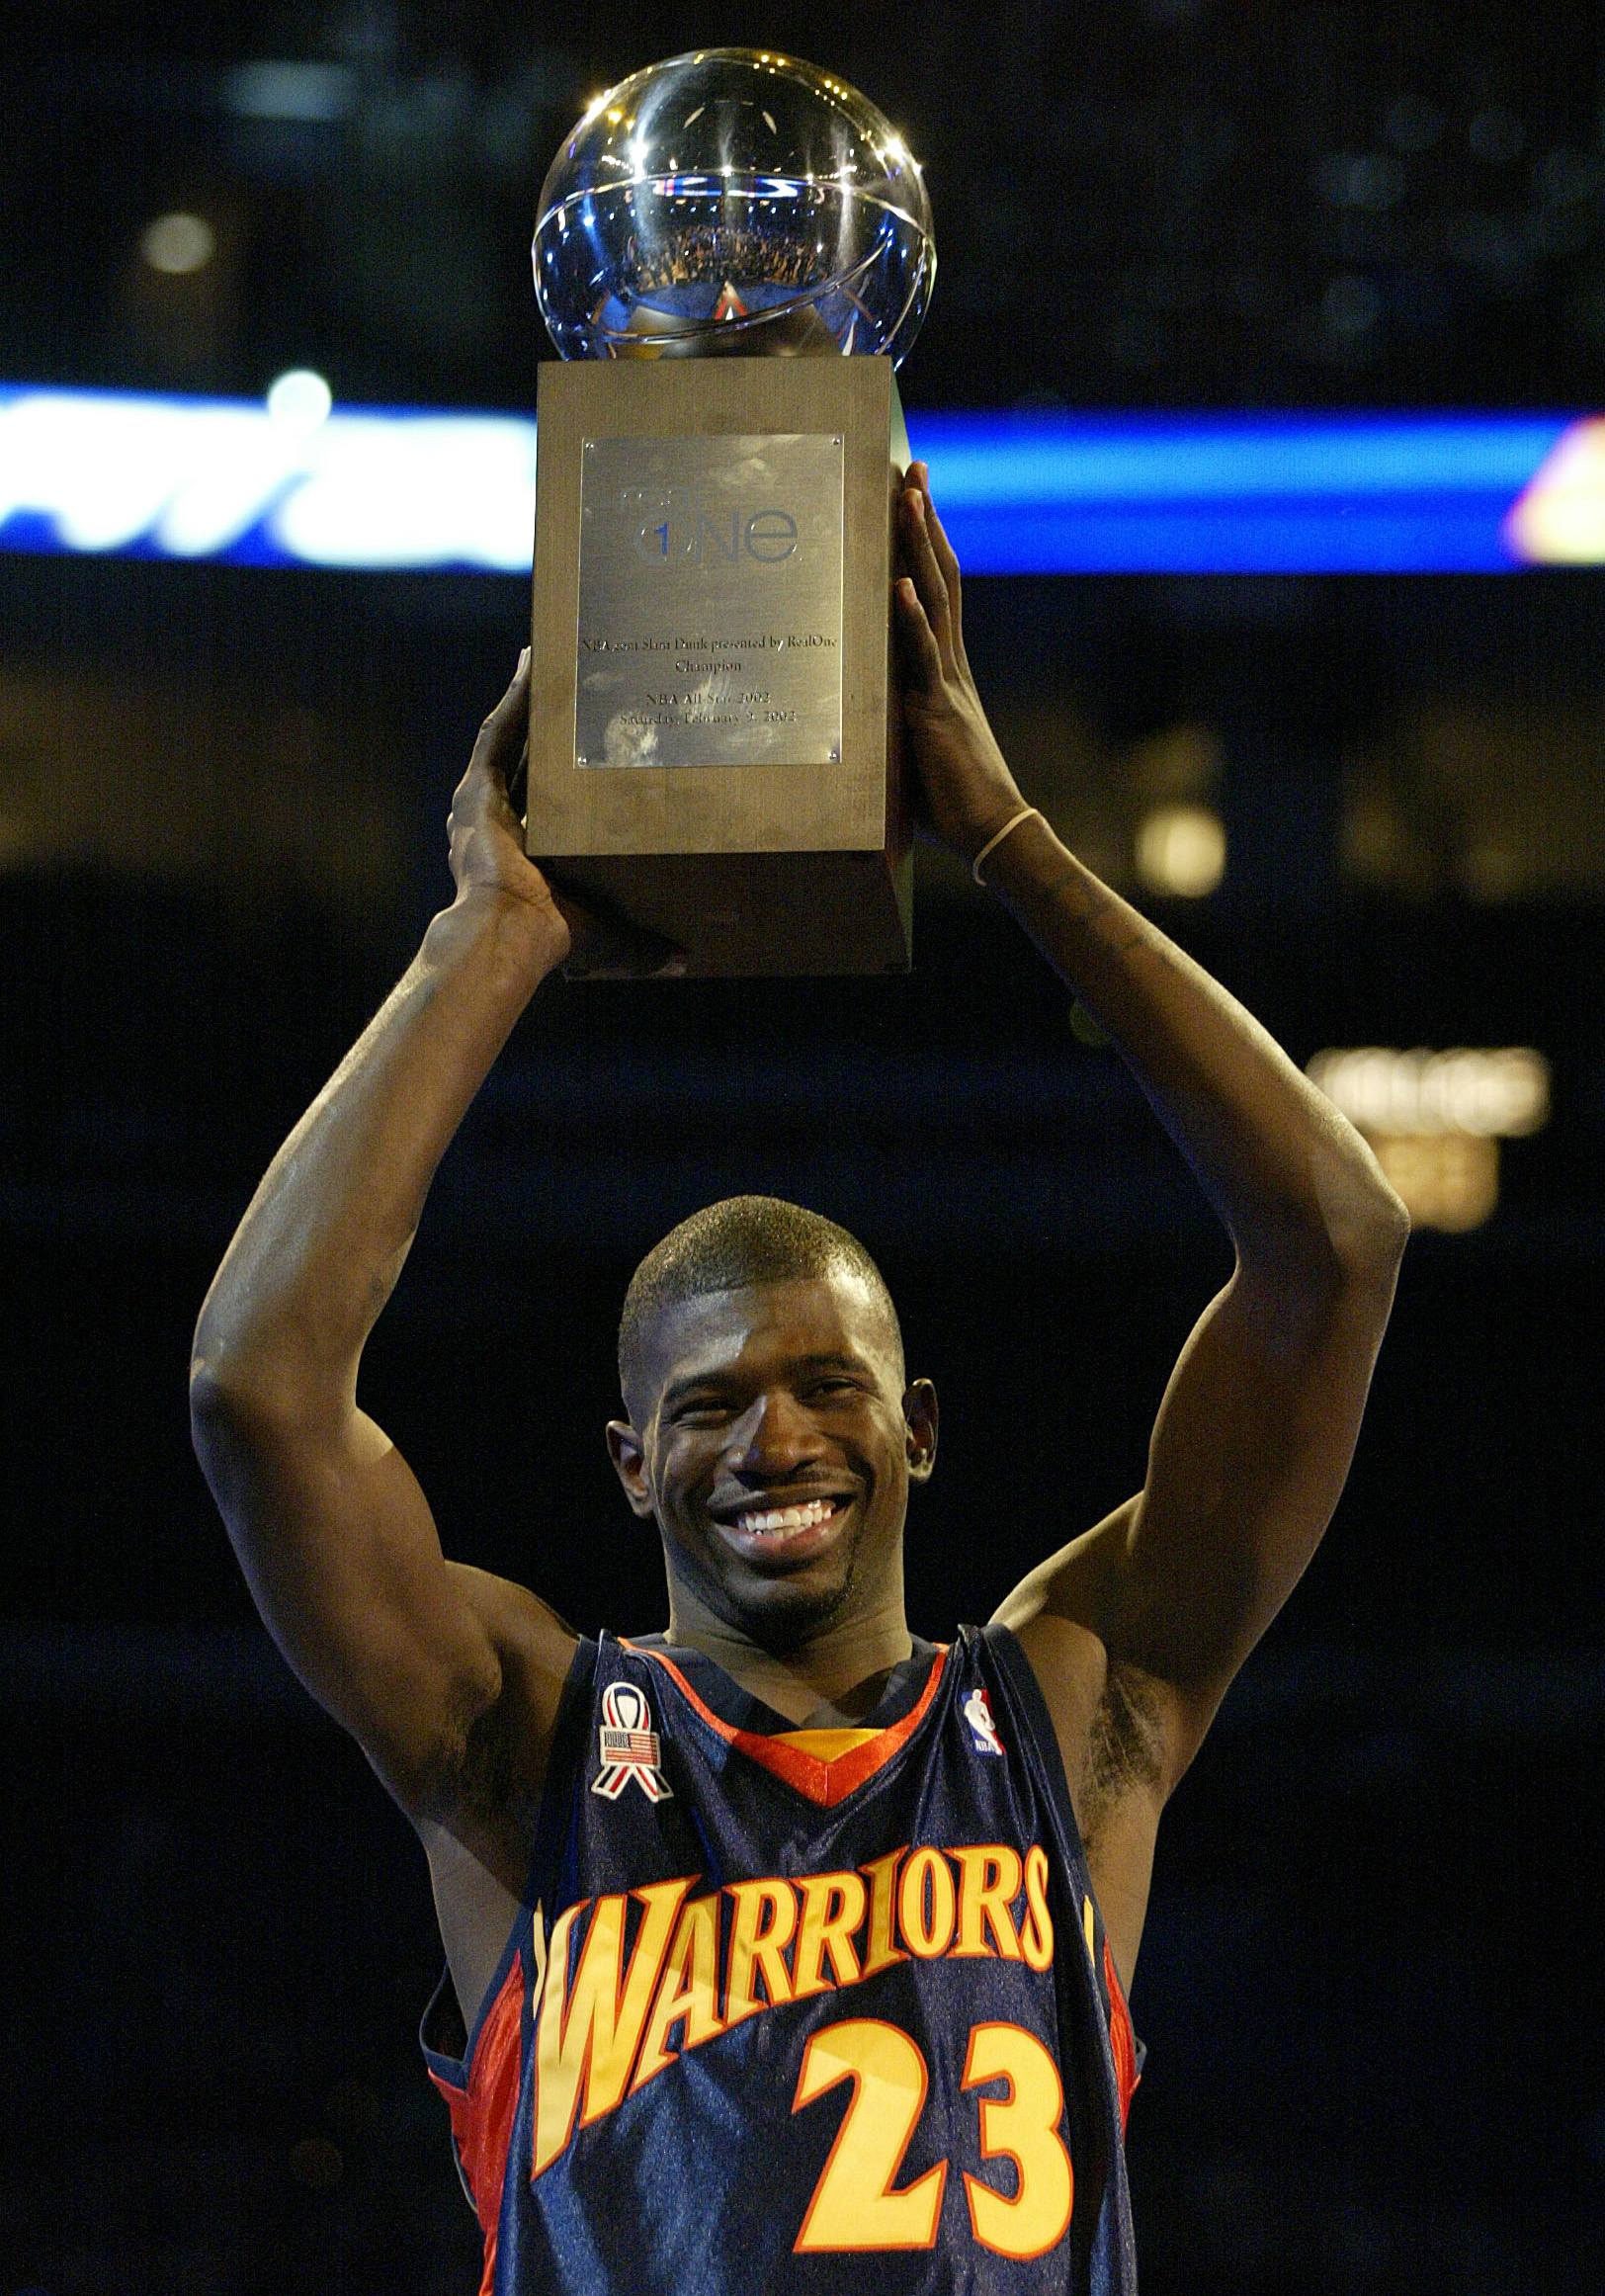 9 Feb 2002:  Jason Richardson of the Golden State Warriors holds the winner's trophy after winning the NBA.Com Slam Dunk competition during the NBA All-Star Weekend at the First Union Center in Philadelphia, Pennsylvania. Richardson won the event and the